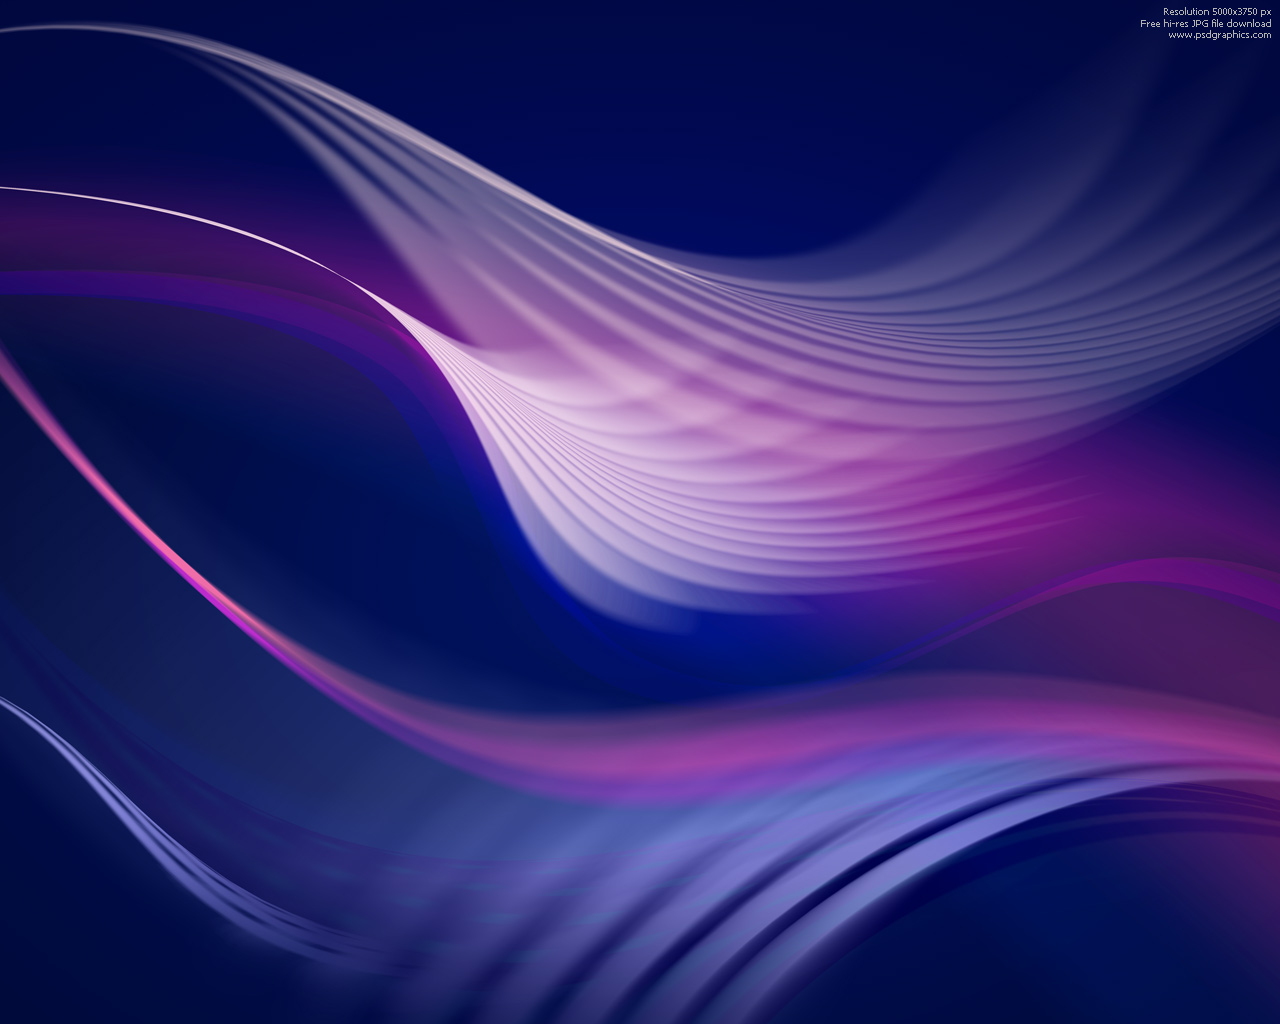 abstract backgrounds photoshop effects digital background motion 1280x1024